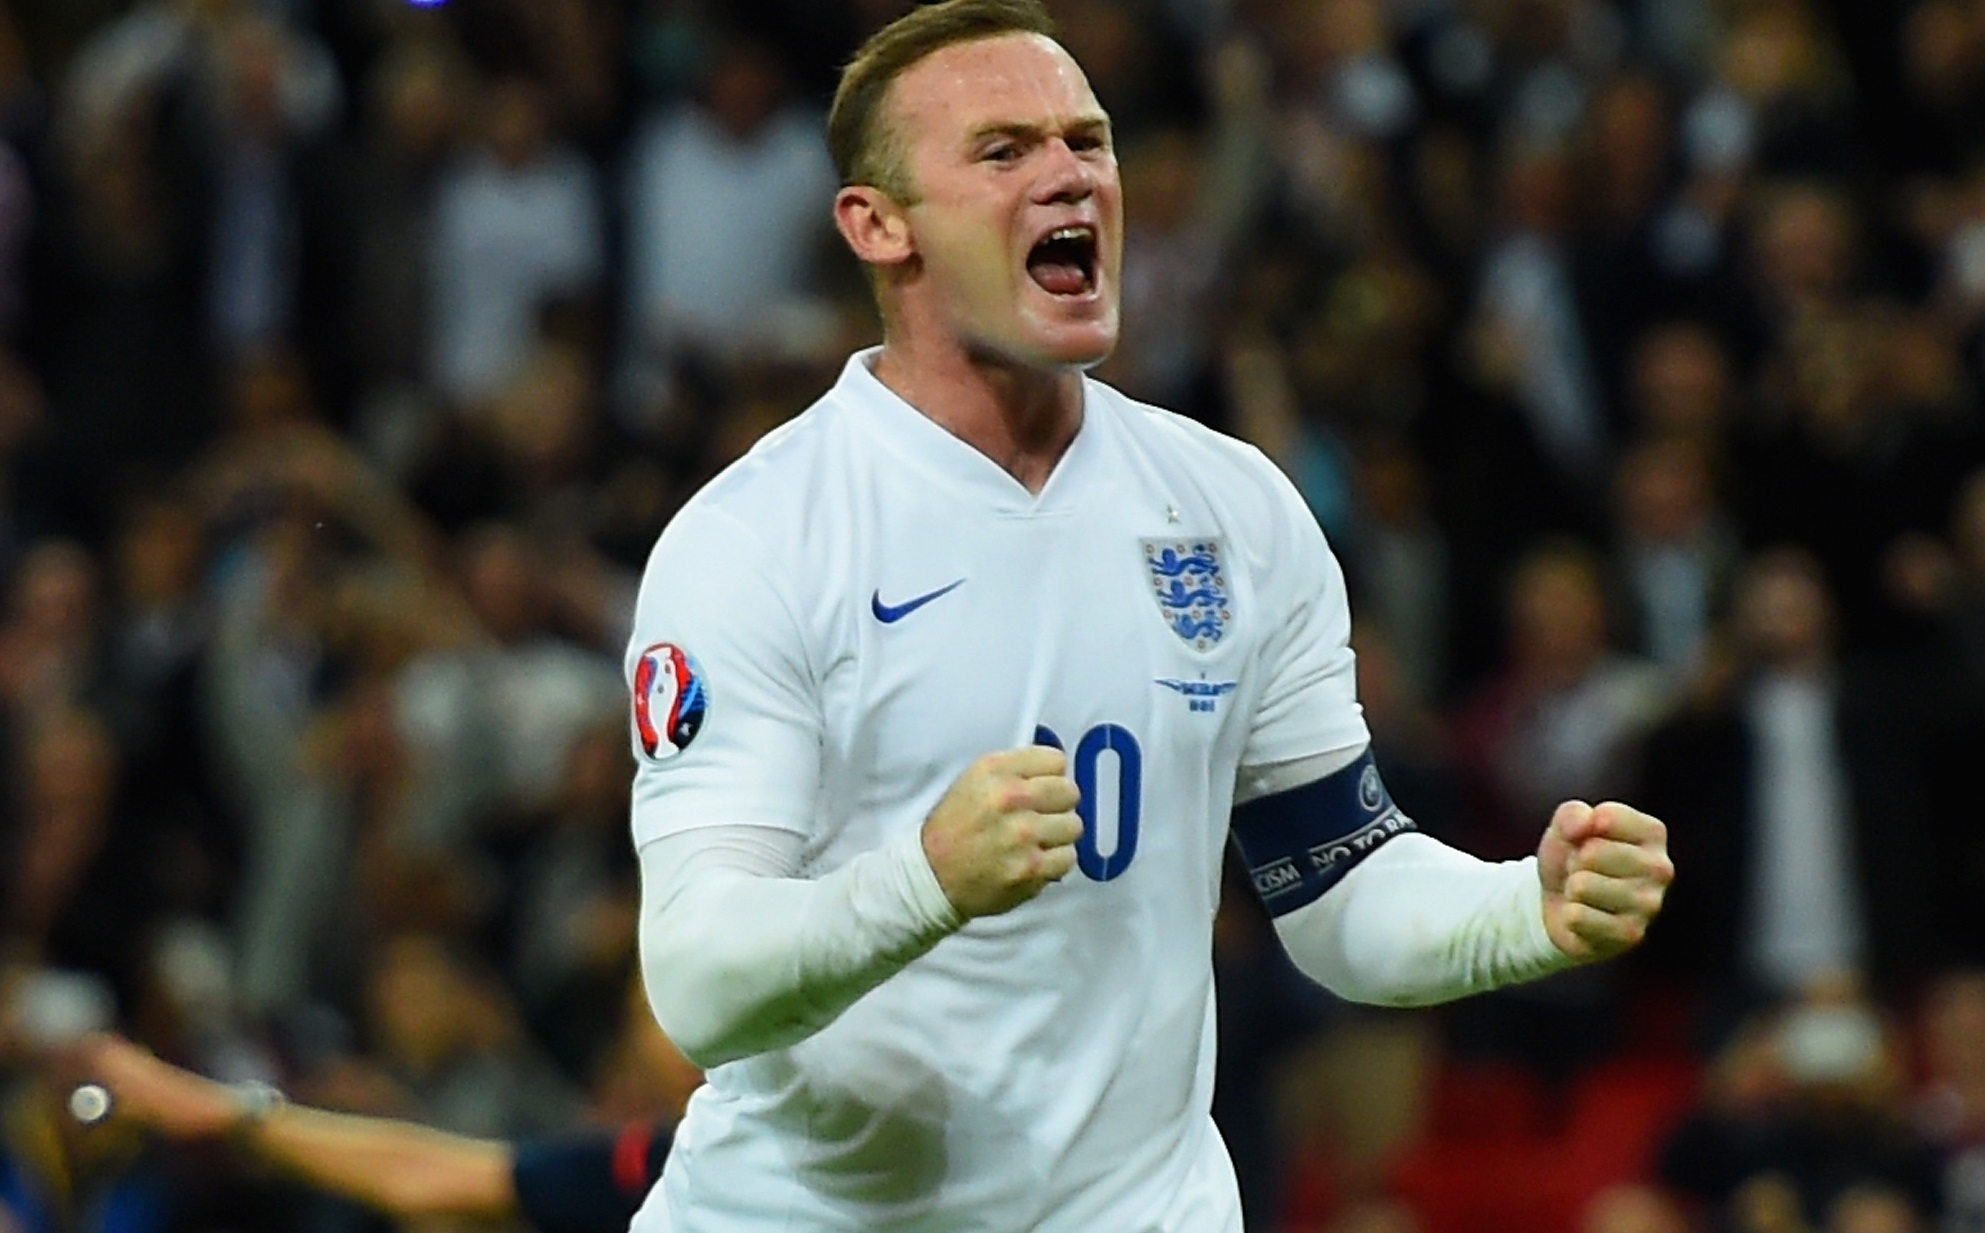 Wayne Rooney (Shaun Botterill/Getty Images)